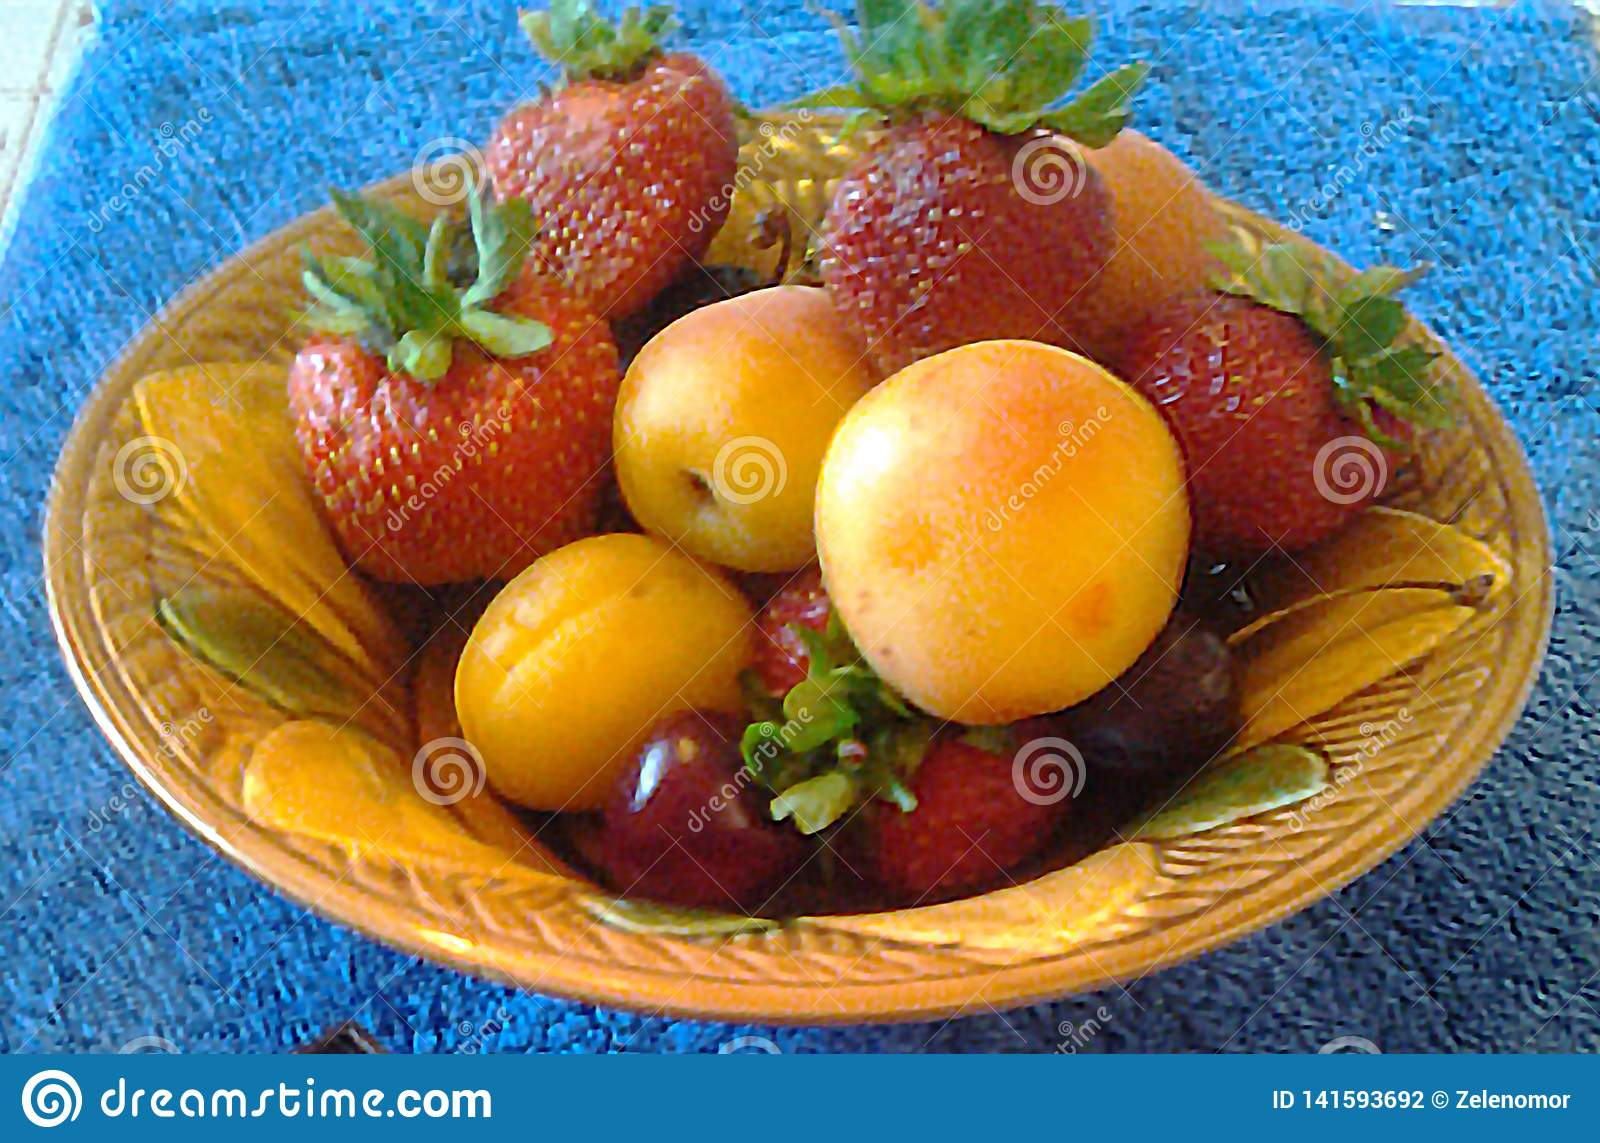 Apricots, peaches, strawberries and cherries.